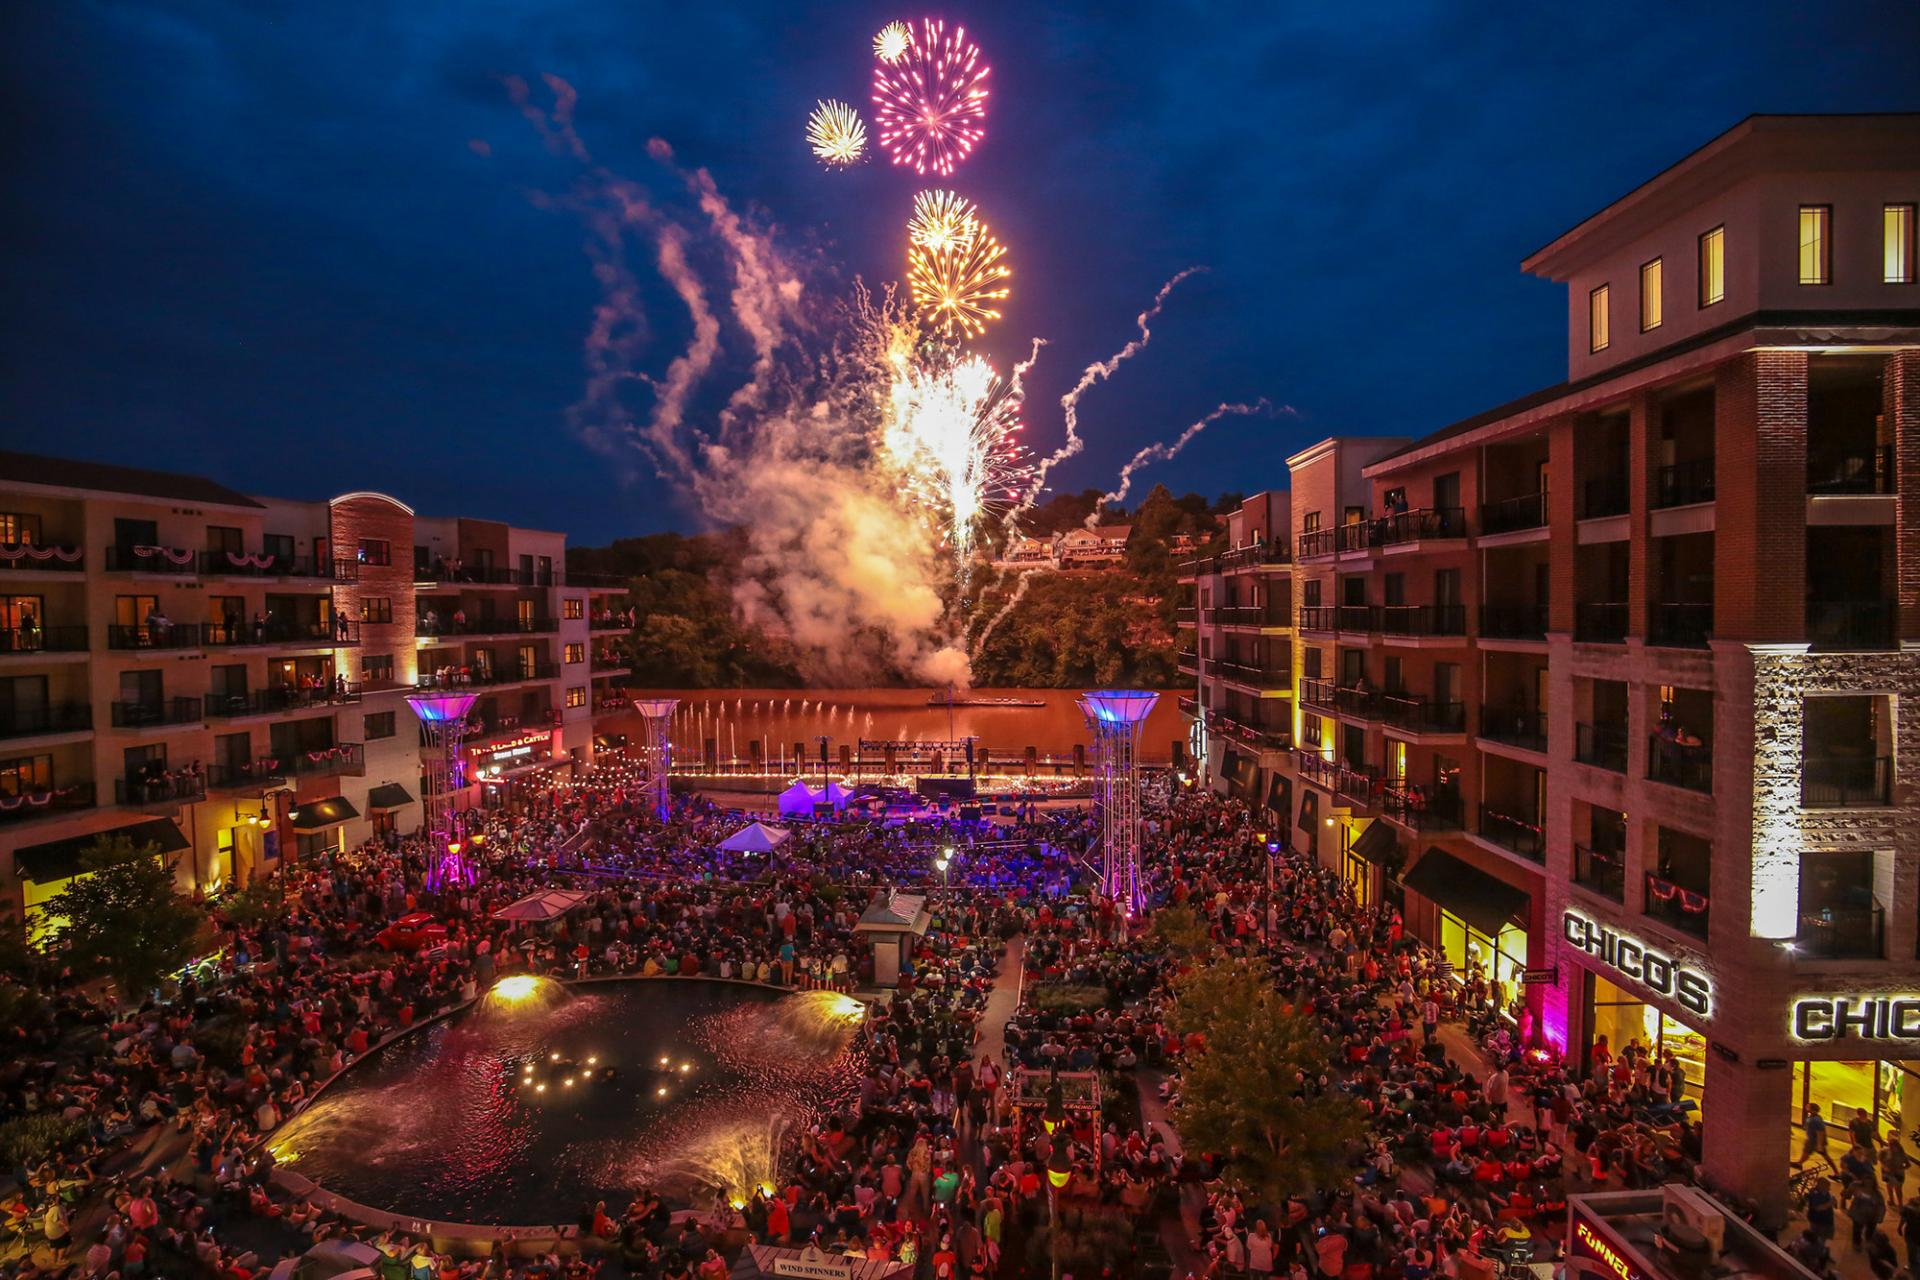 Fireworks at night with a large crowd at Branson Landing.